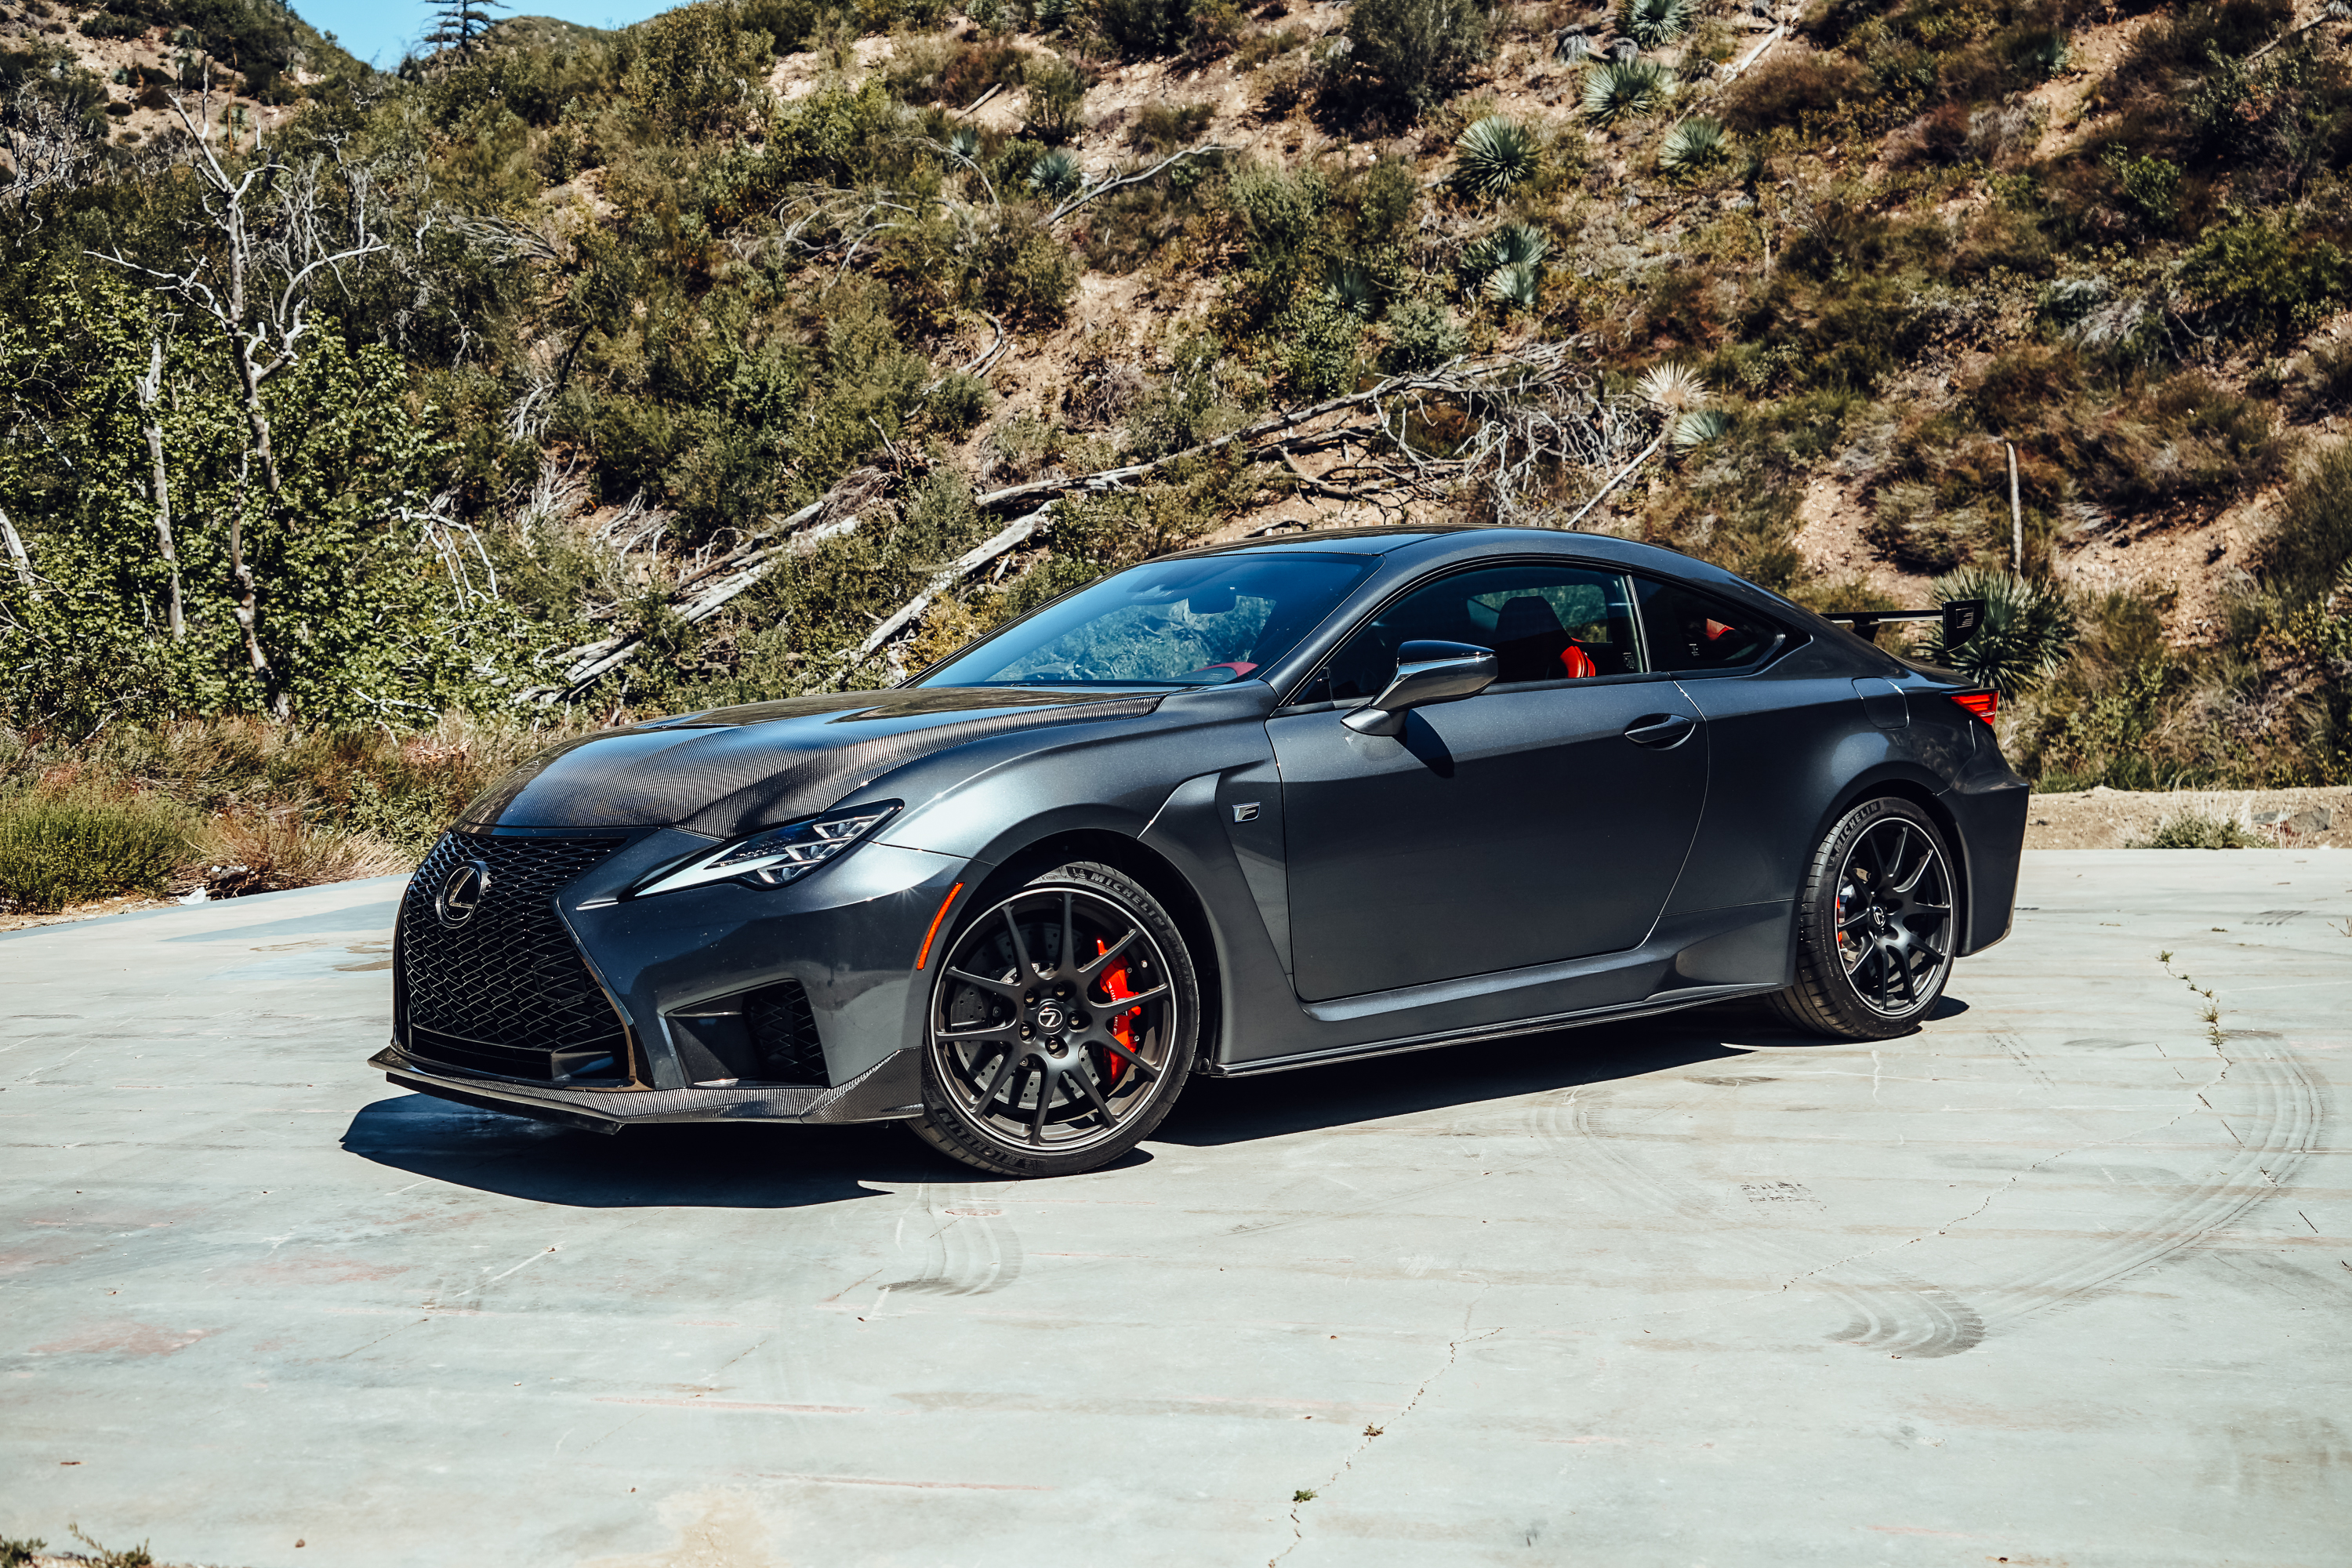 2021 Lexus RC F Fuji Speedway Edition review: Exclusive doesn't always mean good     - Roadshow